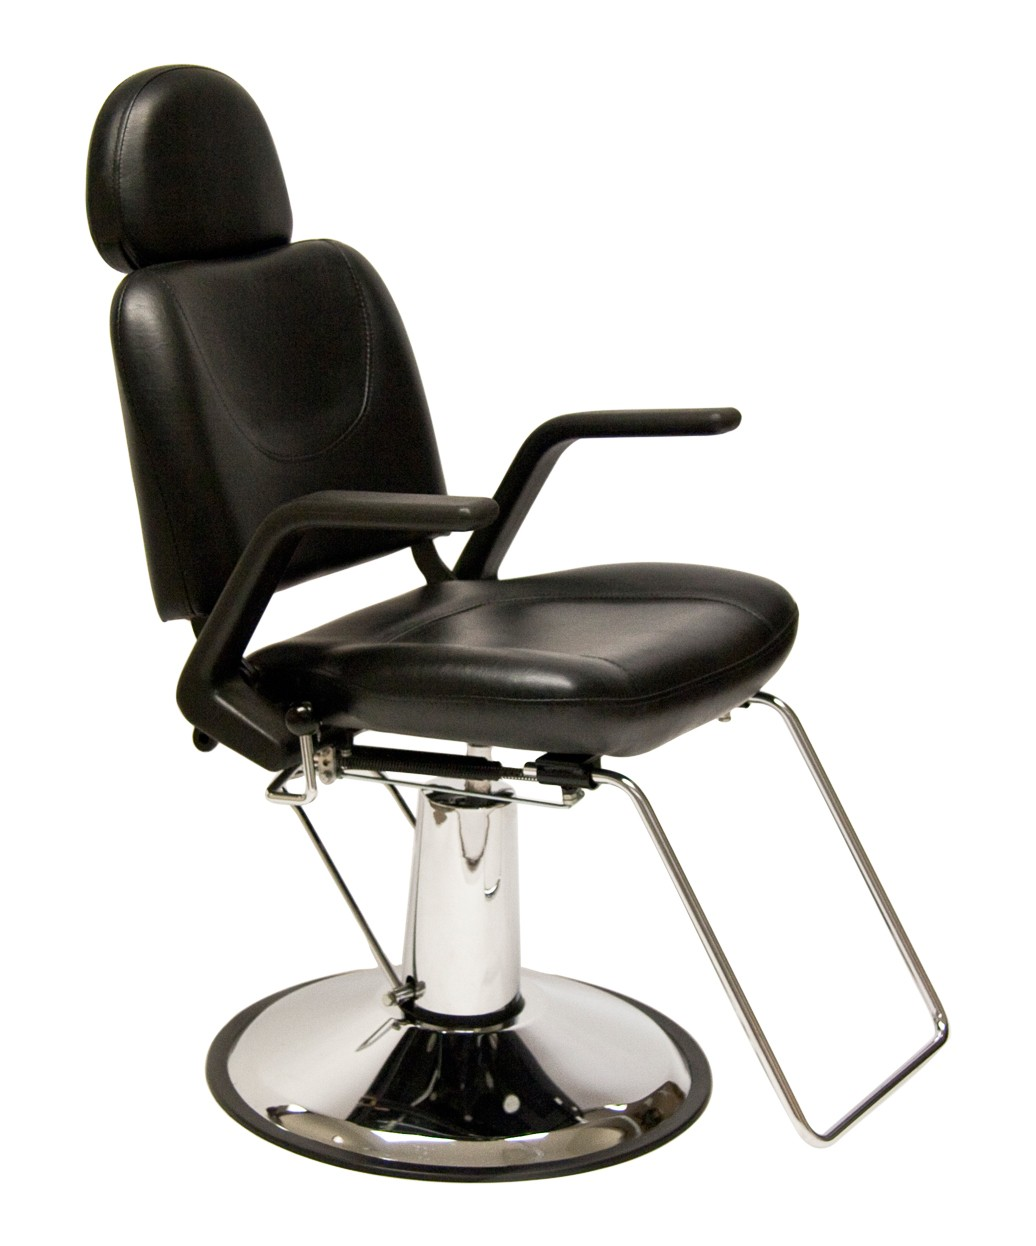 Hydraulic Chairs Sue All Purpose Hydraulic Salon Chair With Headrest